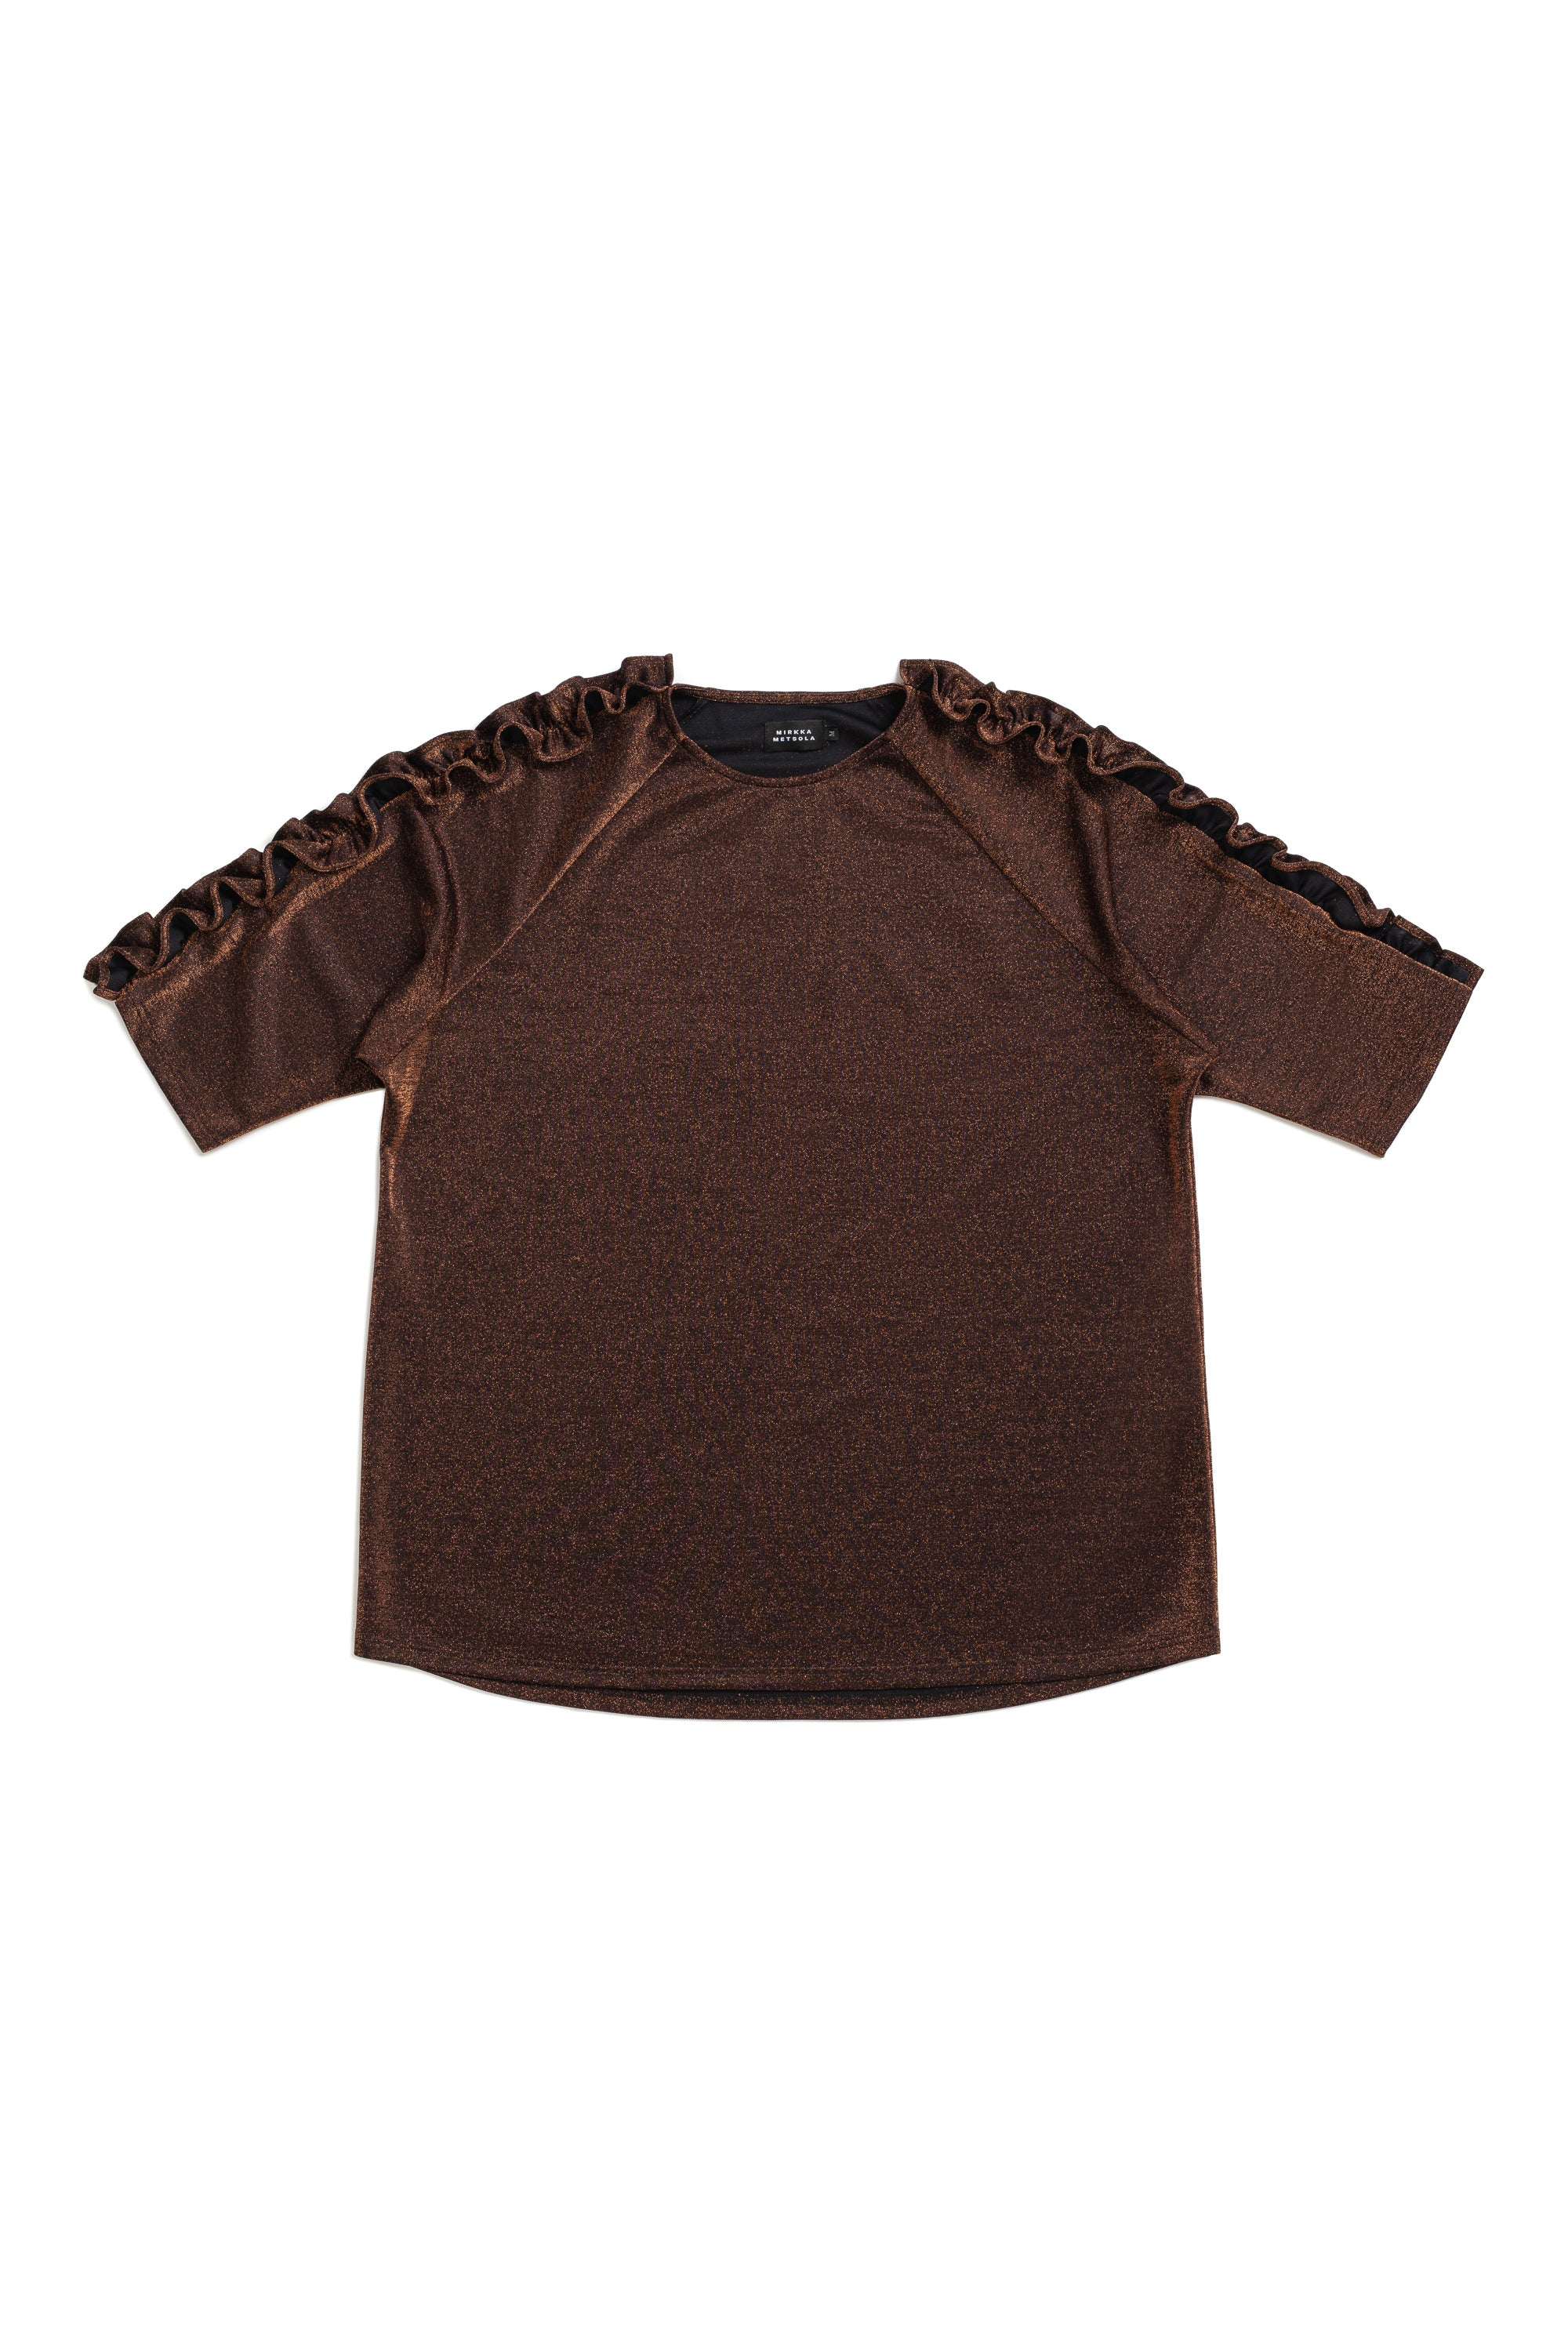 Ruffle Tunic [Copper]